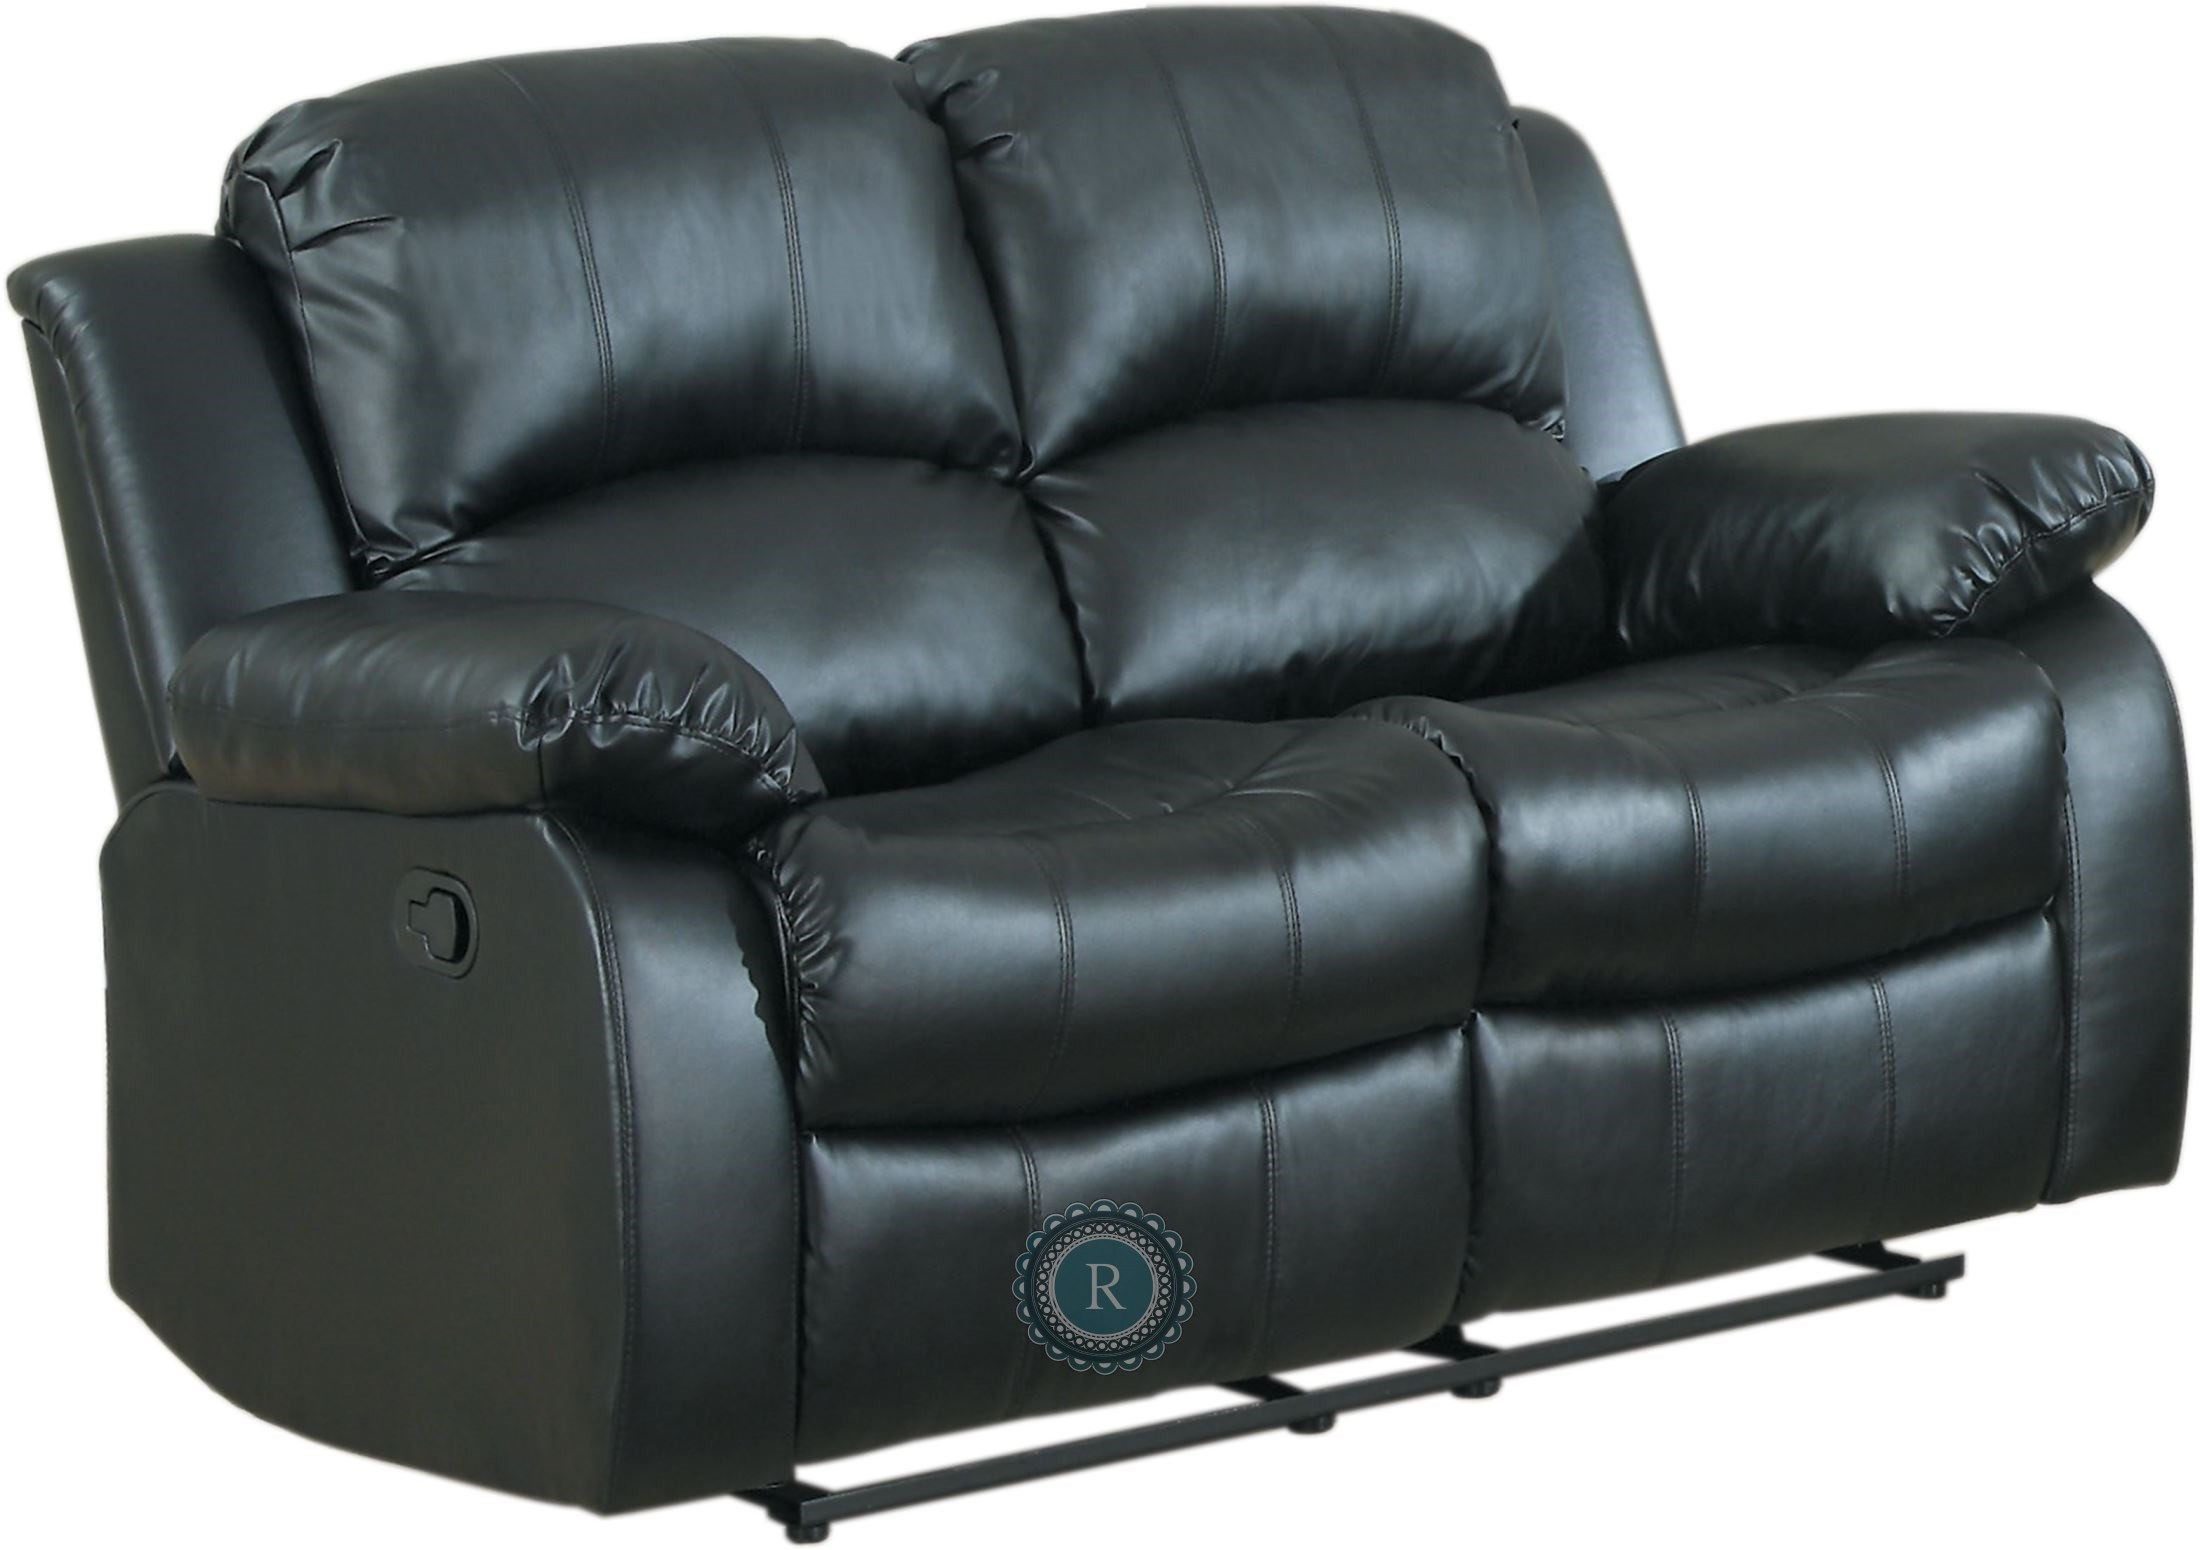 Cranley Black Power Double Reclining Loveseat From Homelegance 9700blk 2pw Coleman Furniture